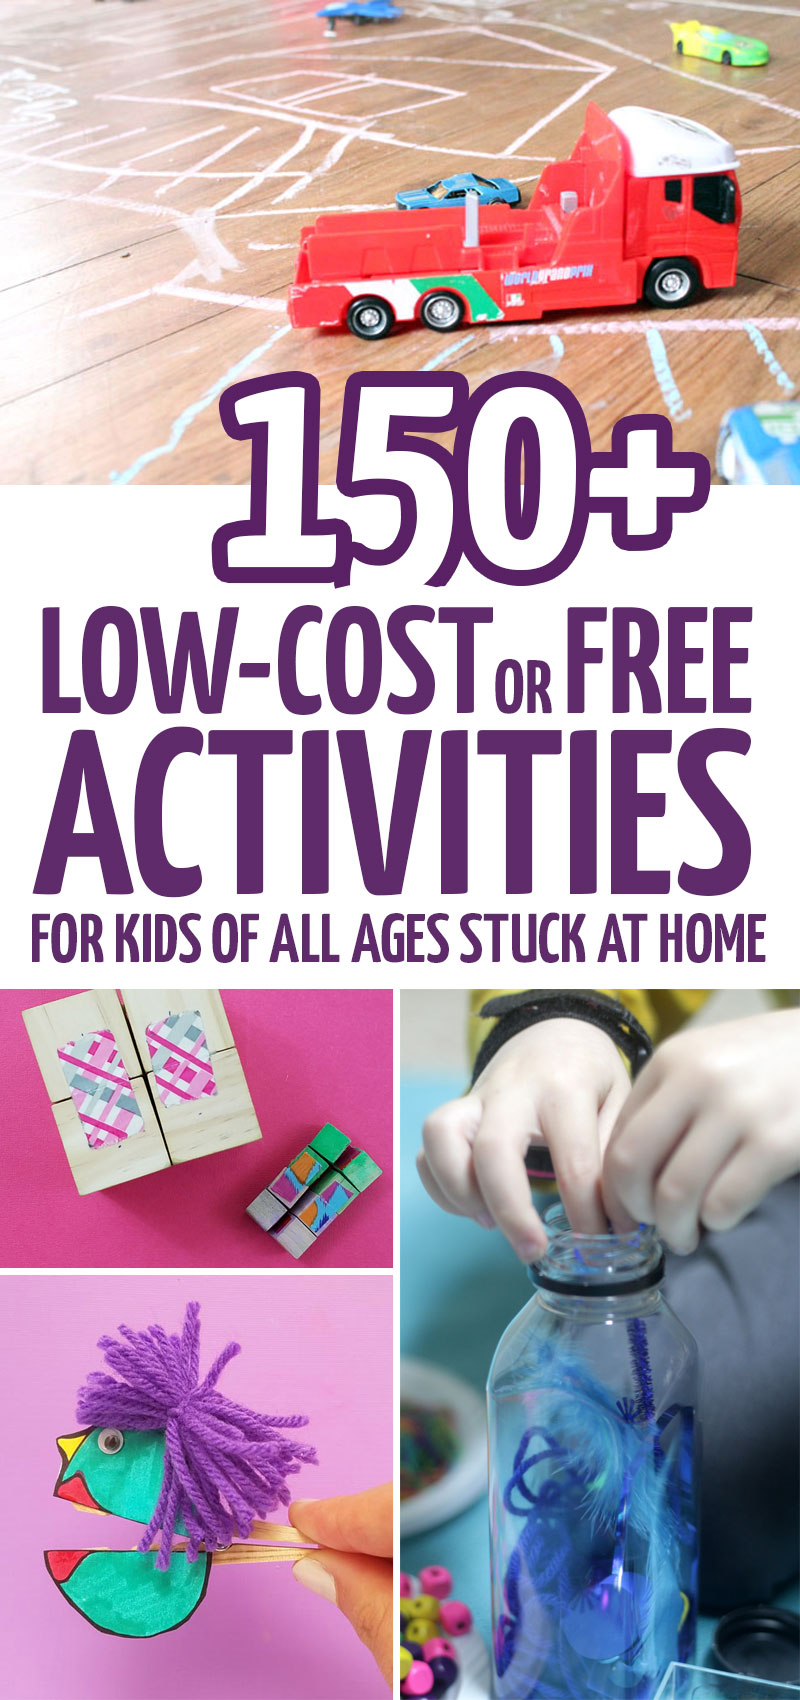 Click for a huge list of free printable activities for kids - with over 150 fun things to do at home with kids of all ages - including ideas for babies, toddlers, preschoolers, grade school, tweens, teens - and even grown-ups!